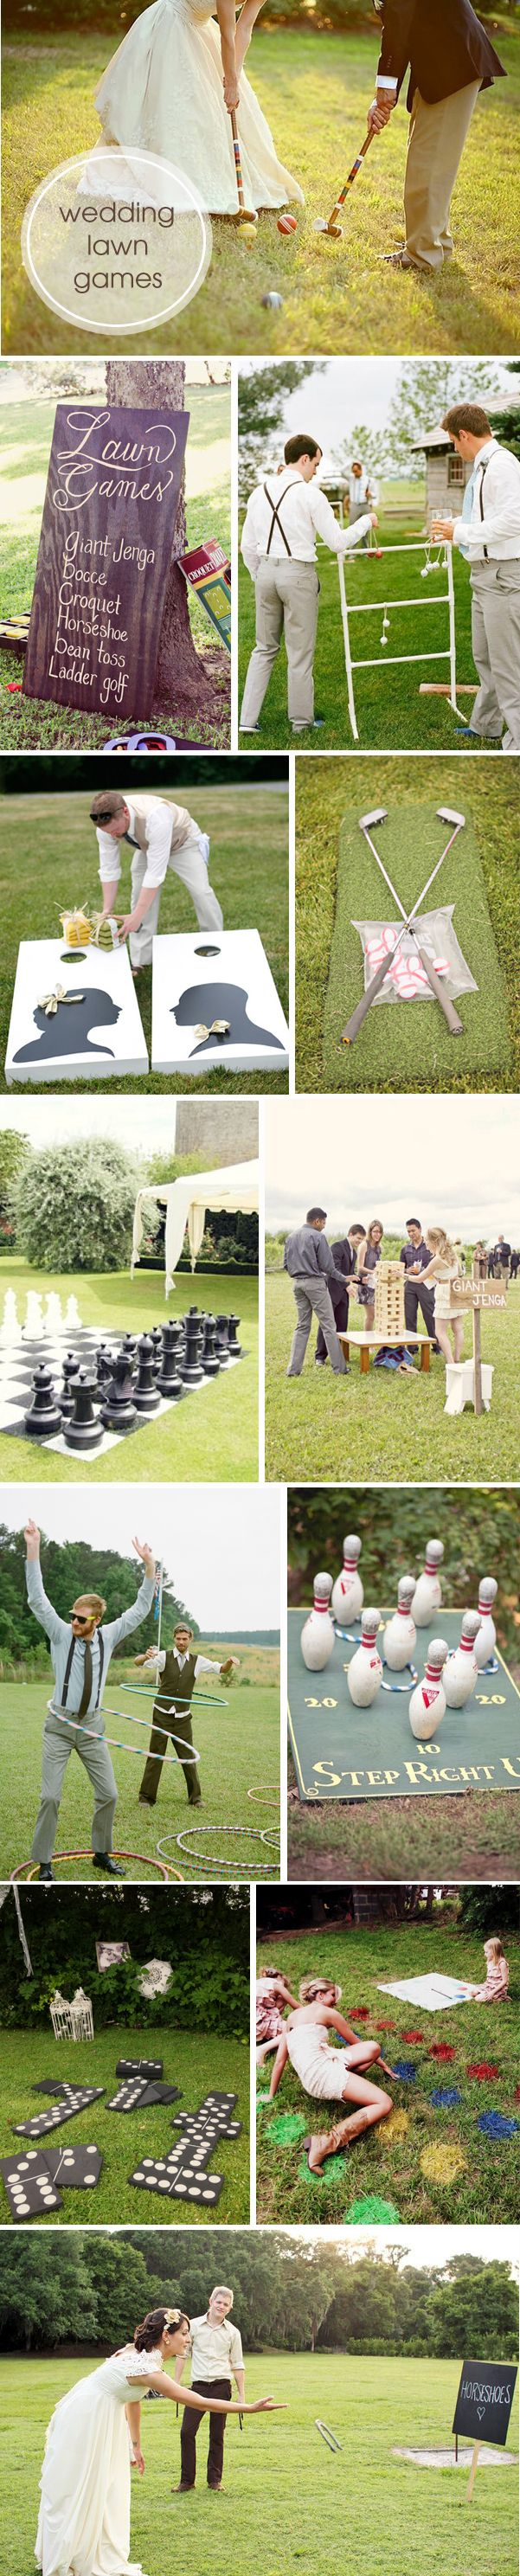 Round-up of super fun and unique wedding lawn games! giant Jenga. corn hole. ect